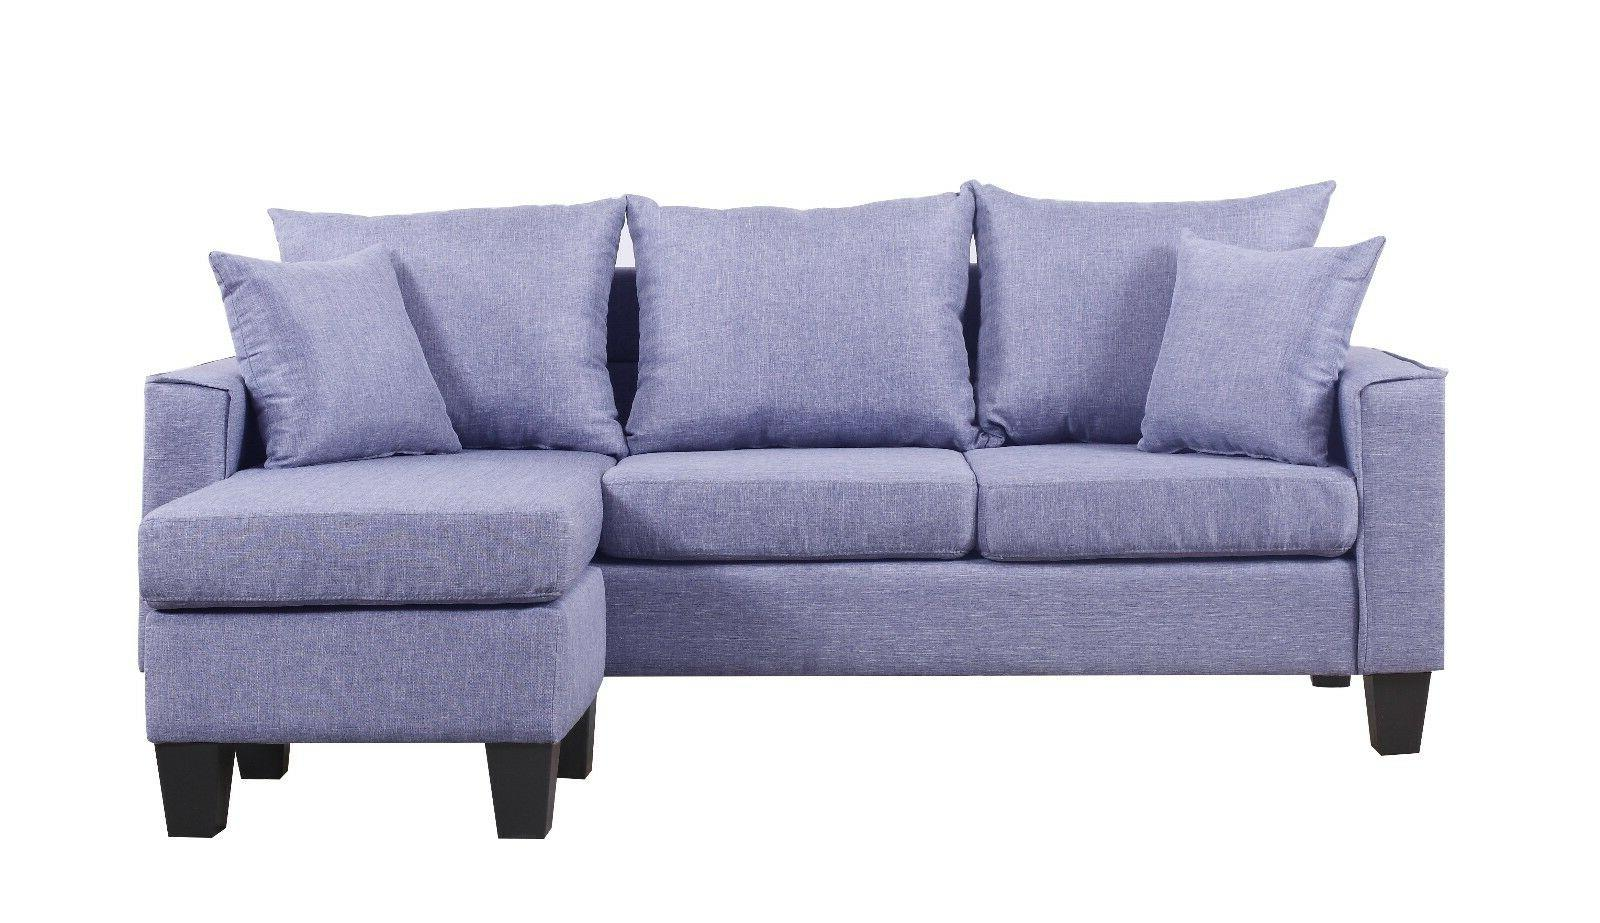 Modern Small Space Sectional Sofa Reversible Grey